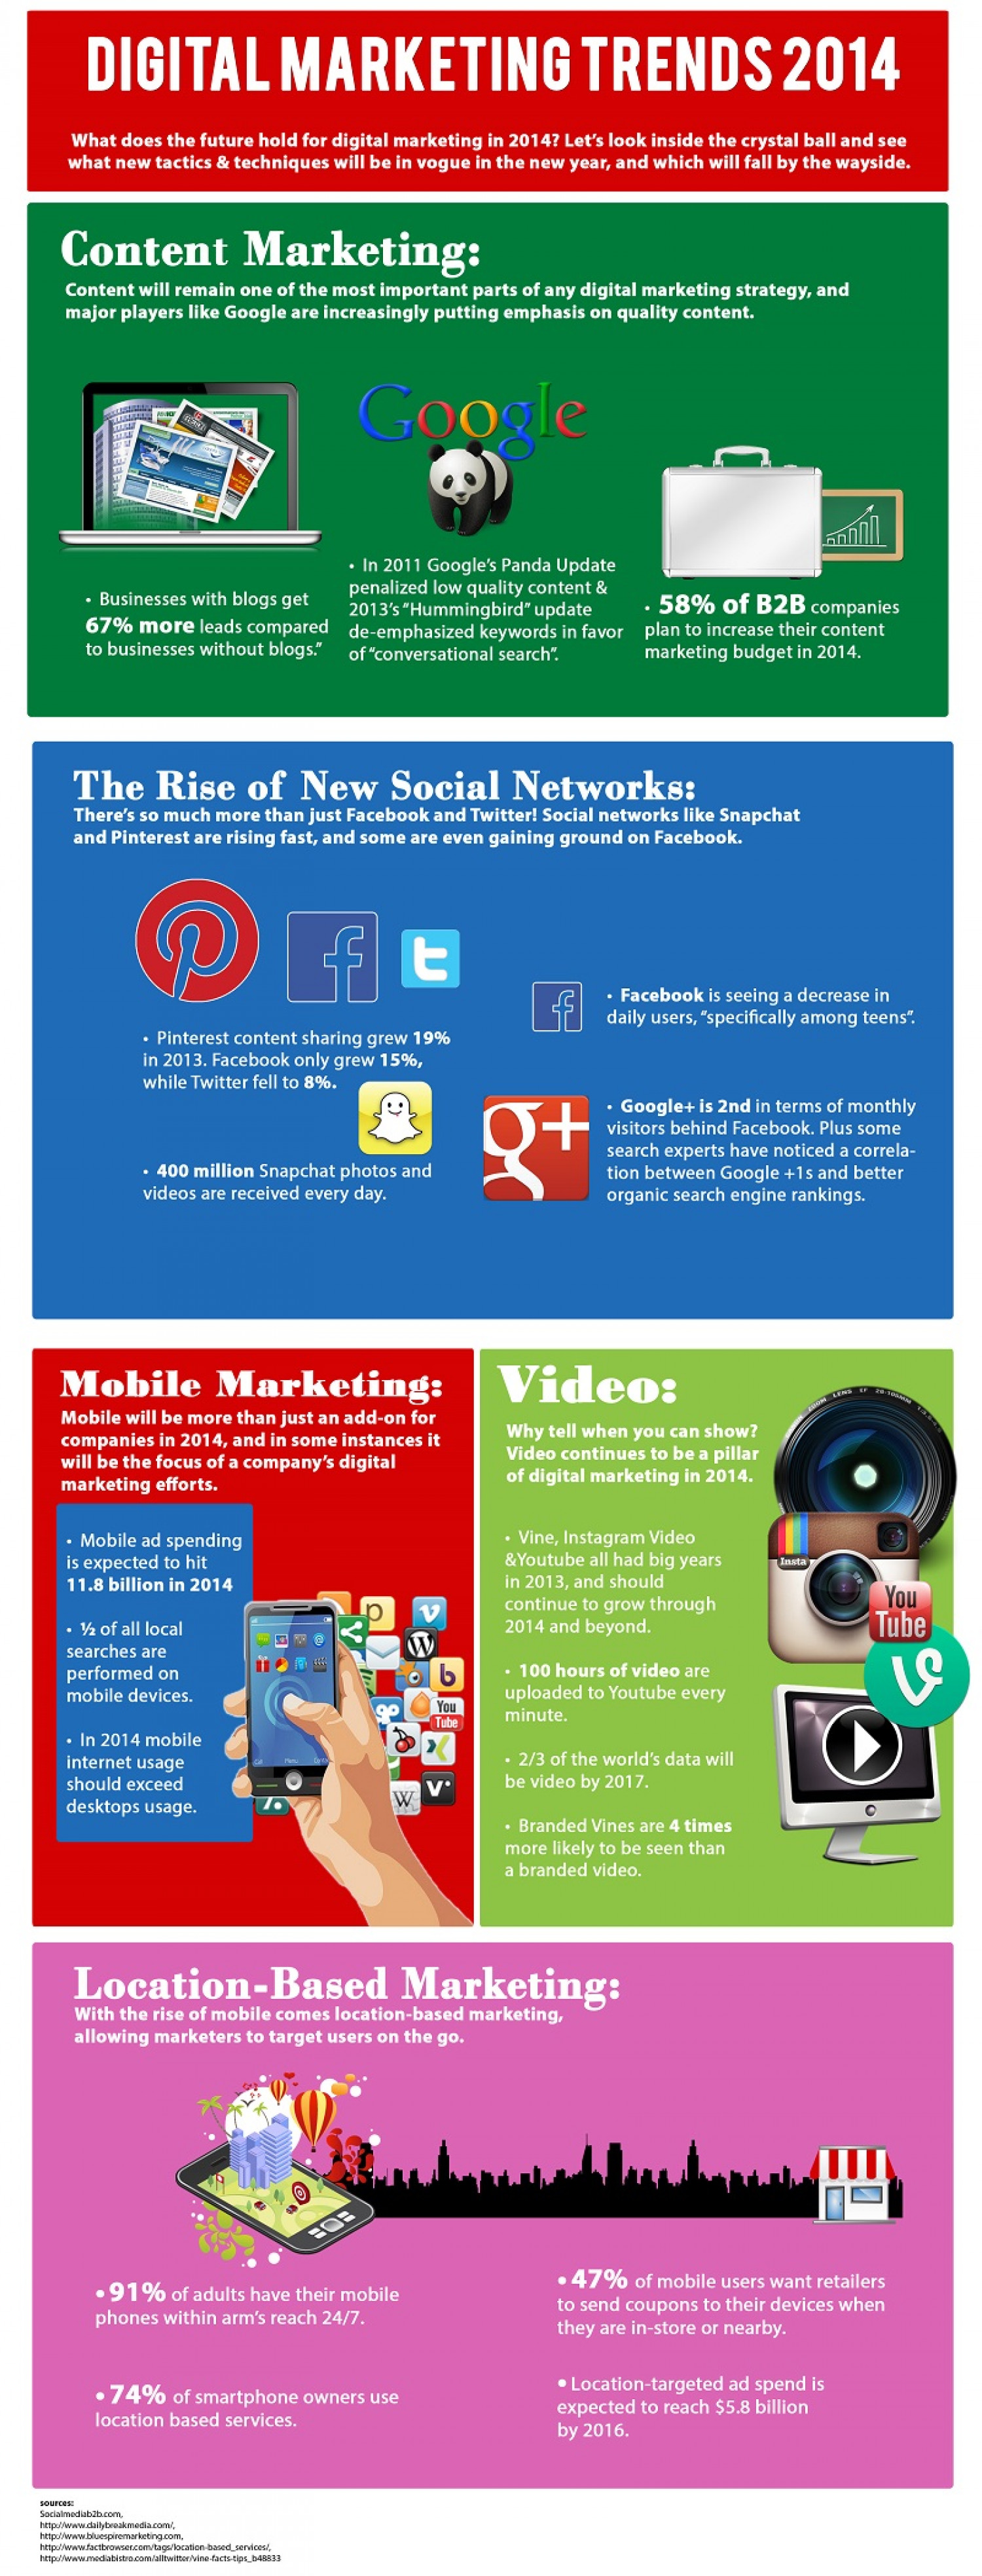 Digital Marketing Trends 2014  Infographic